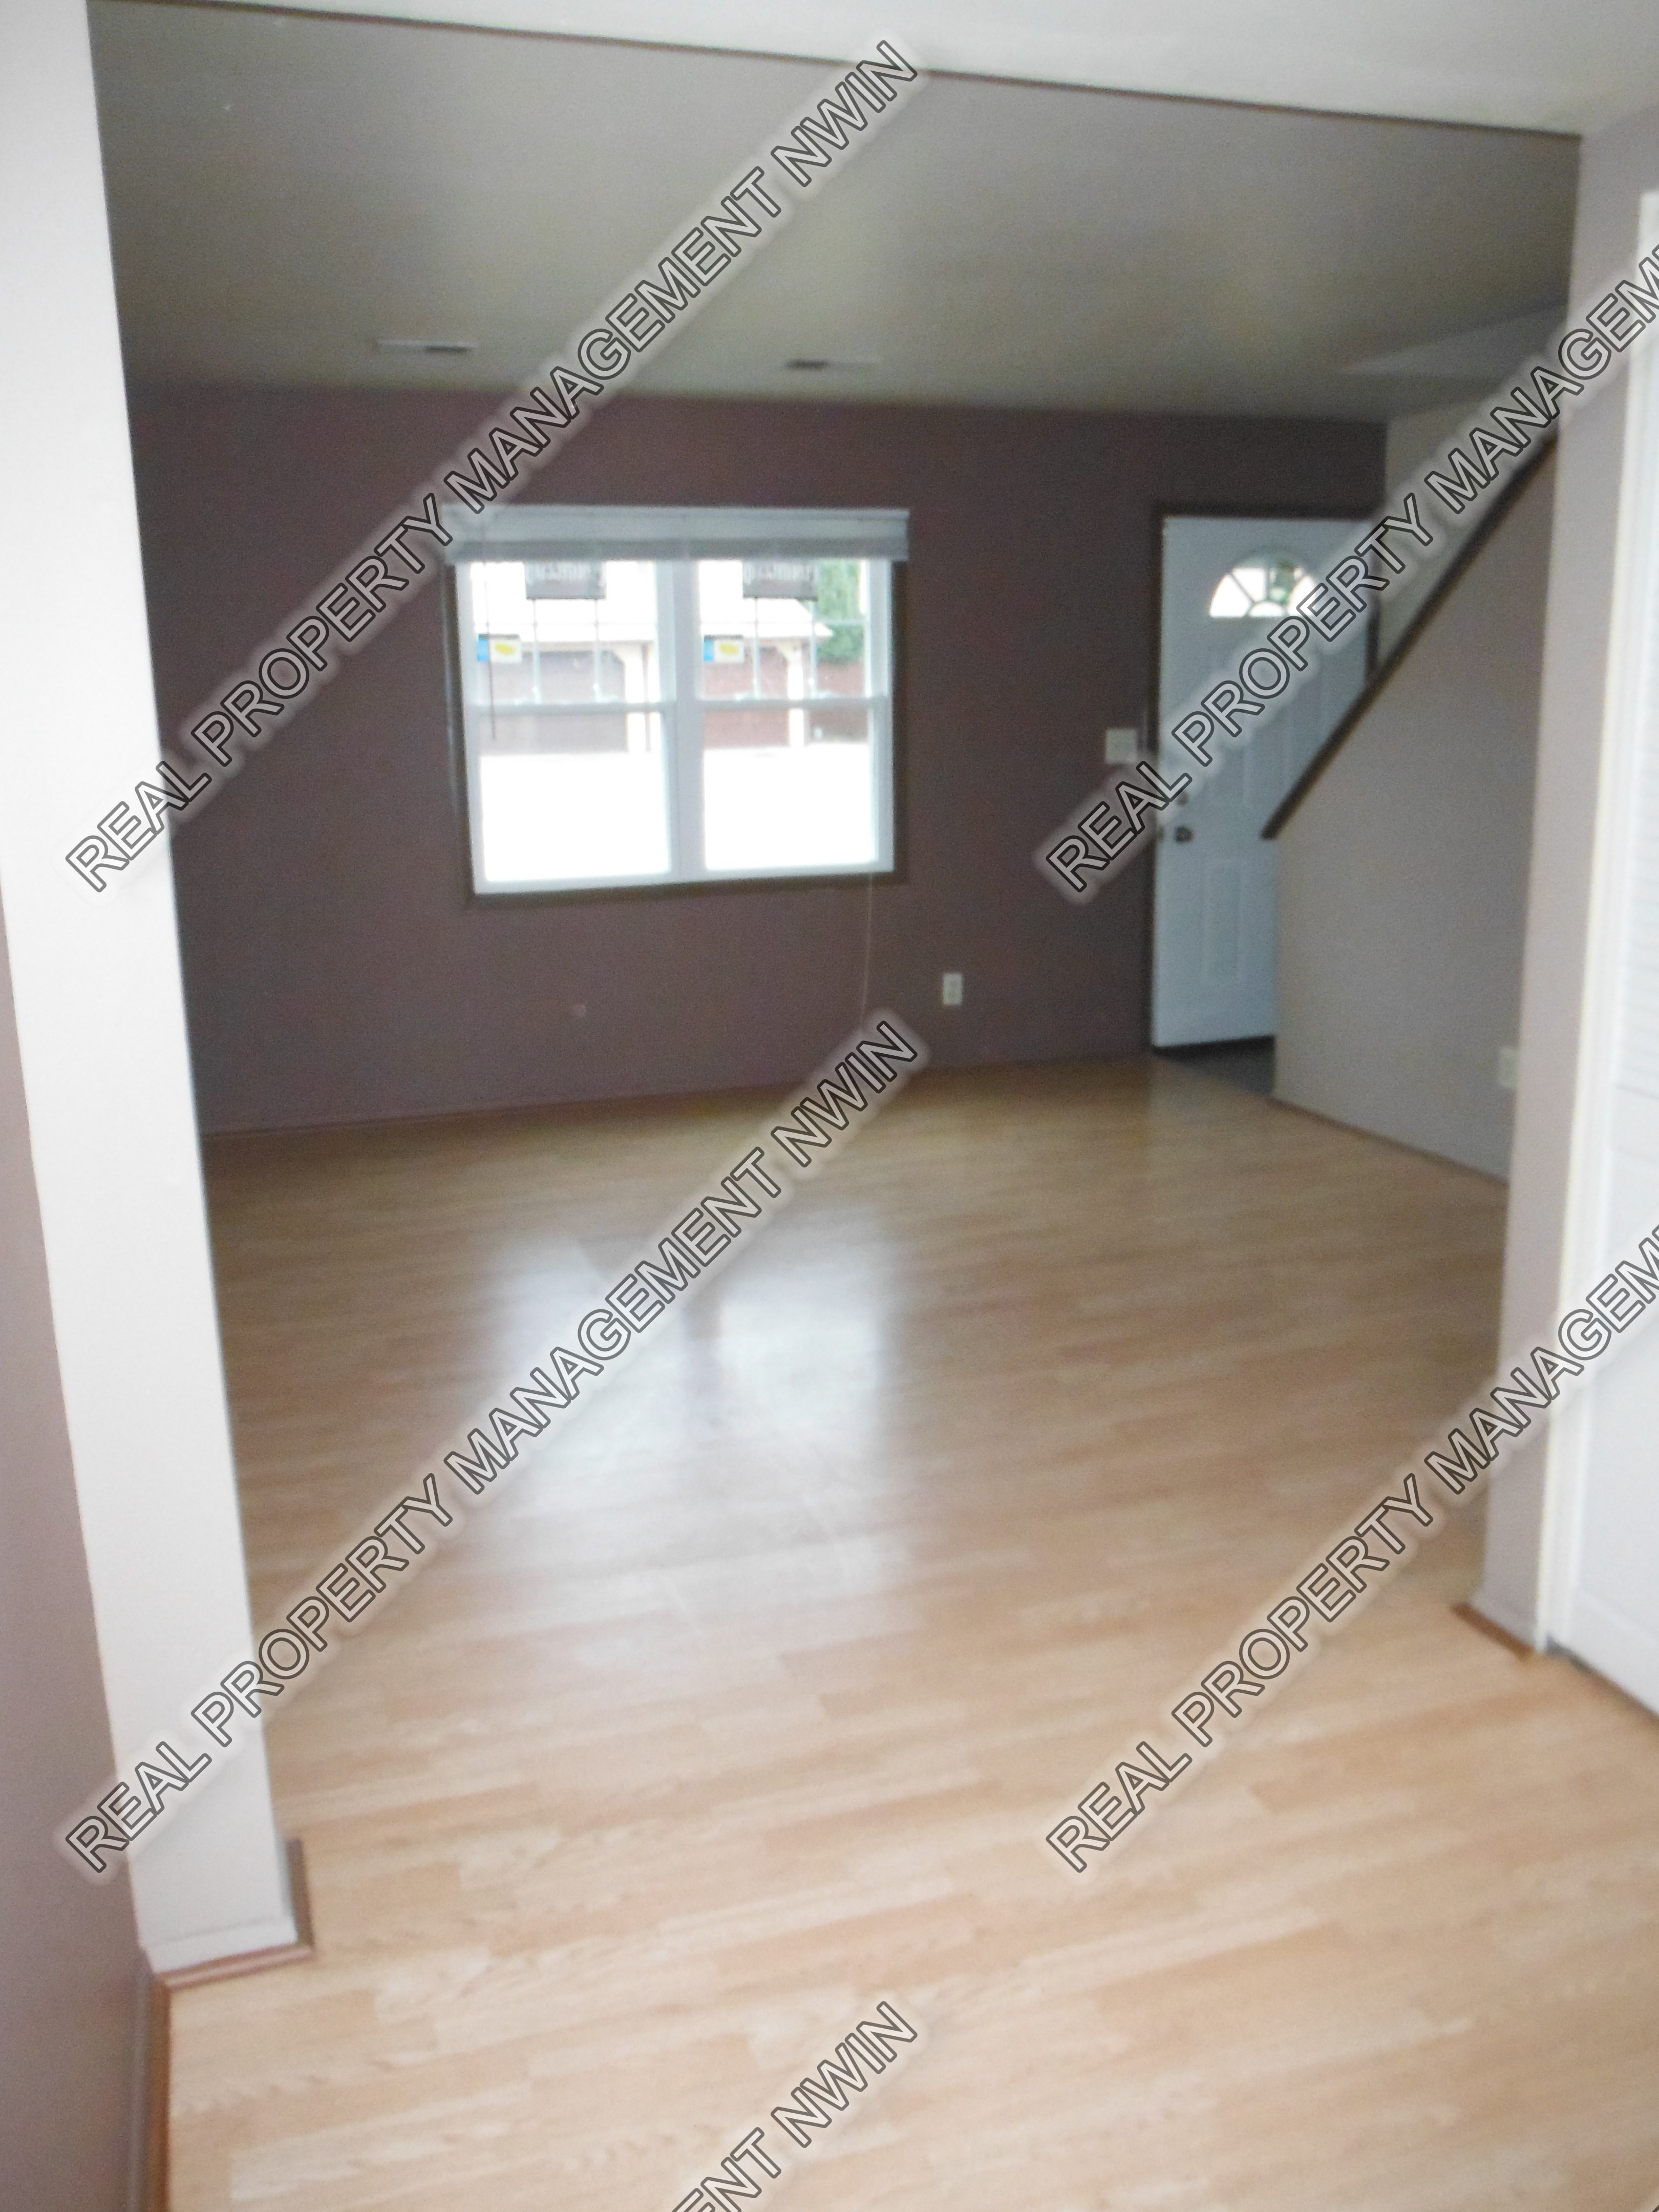 Townhouse for Rent in Valparaiso